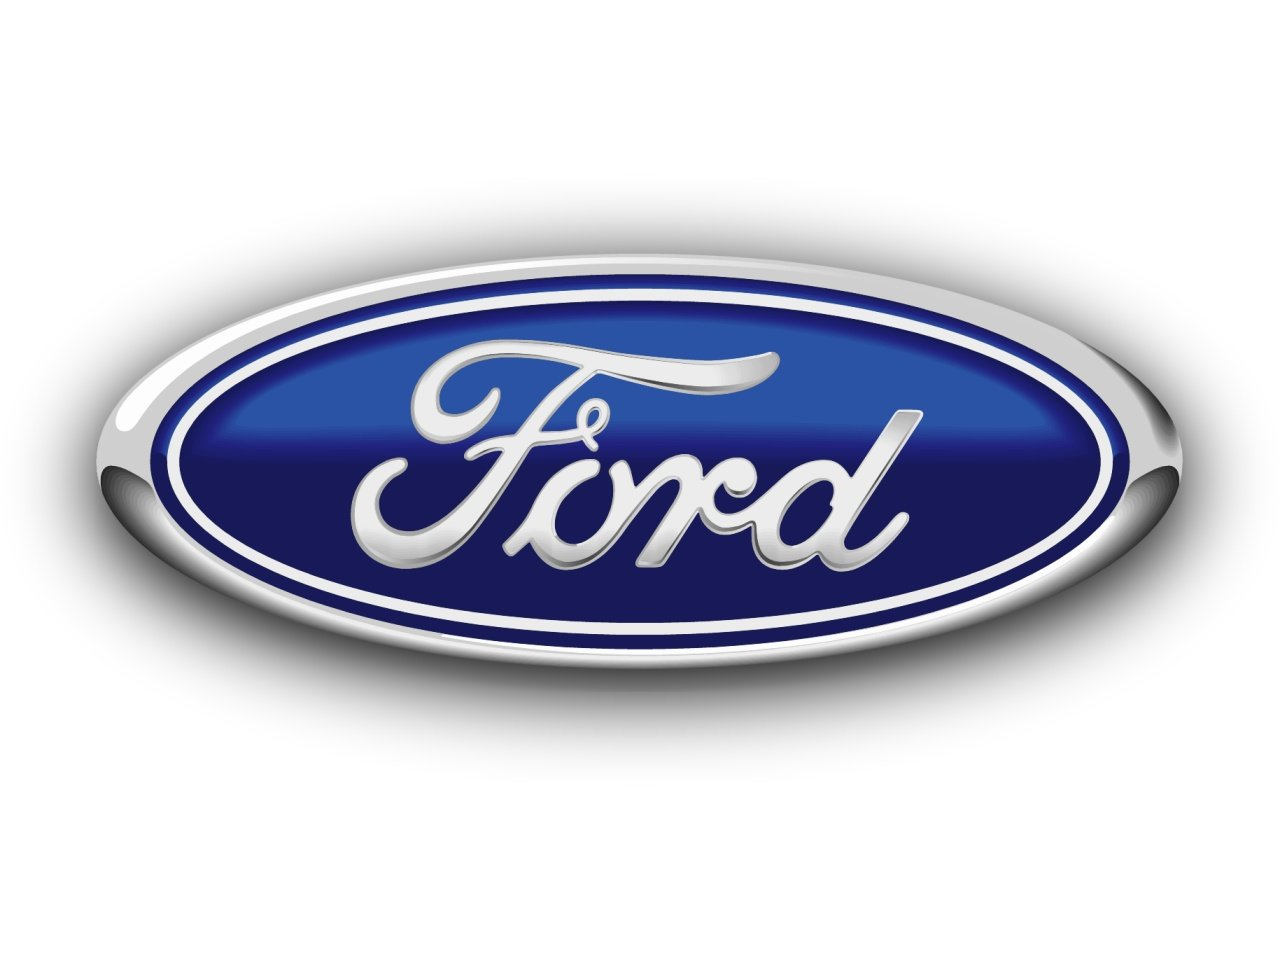 Ford announces new self-parking technology